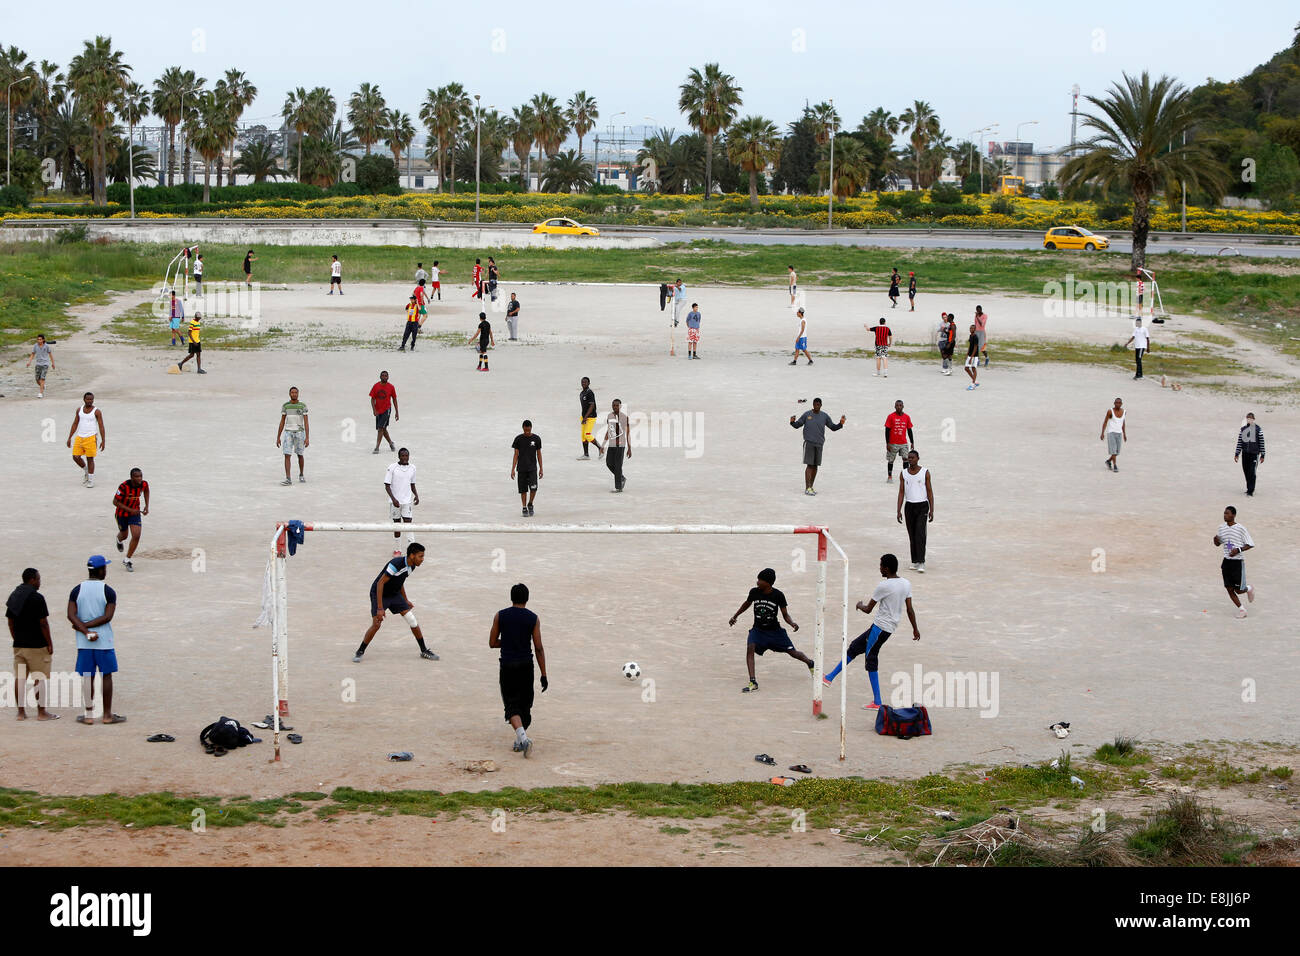 West Africans playing soccer in Tunis - Stock Image